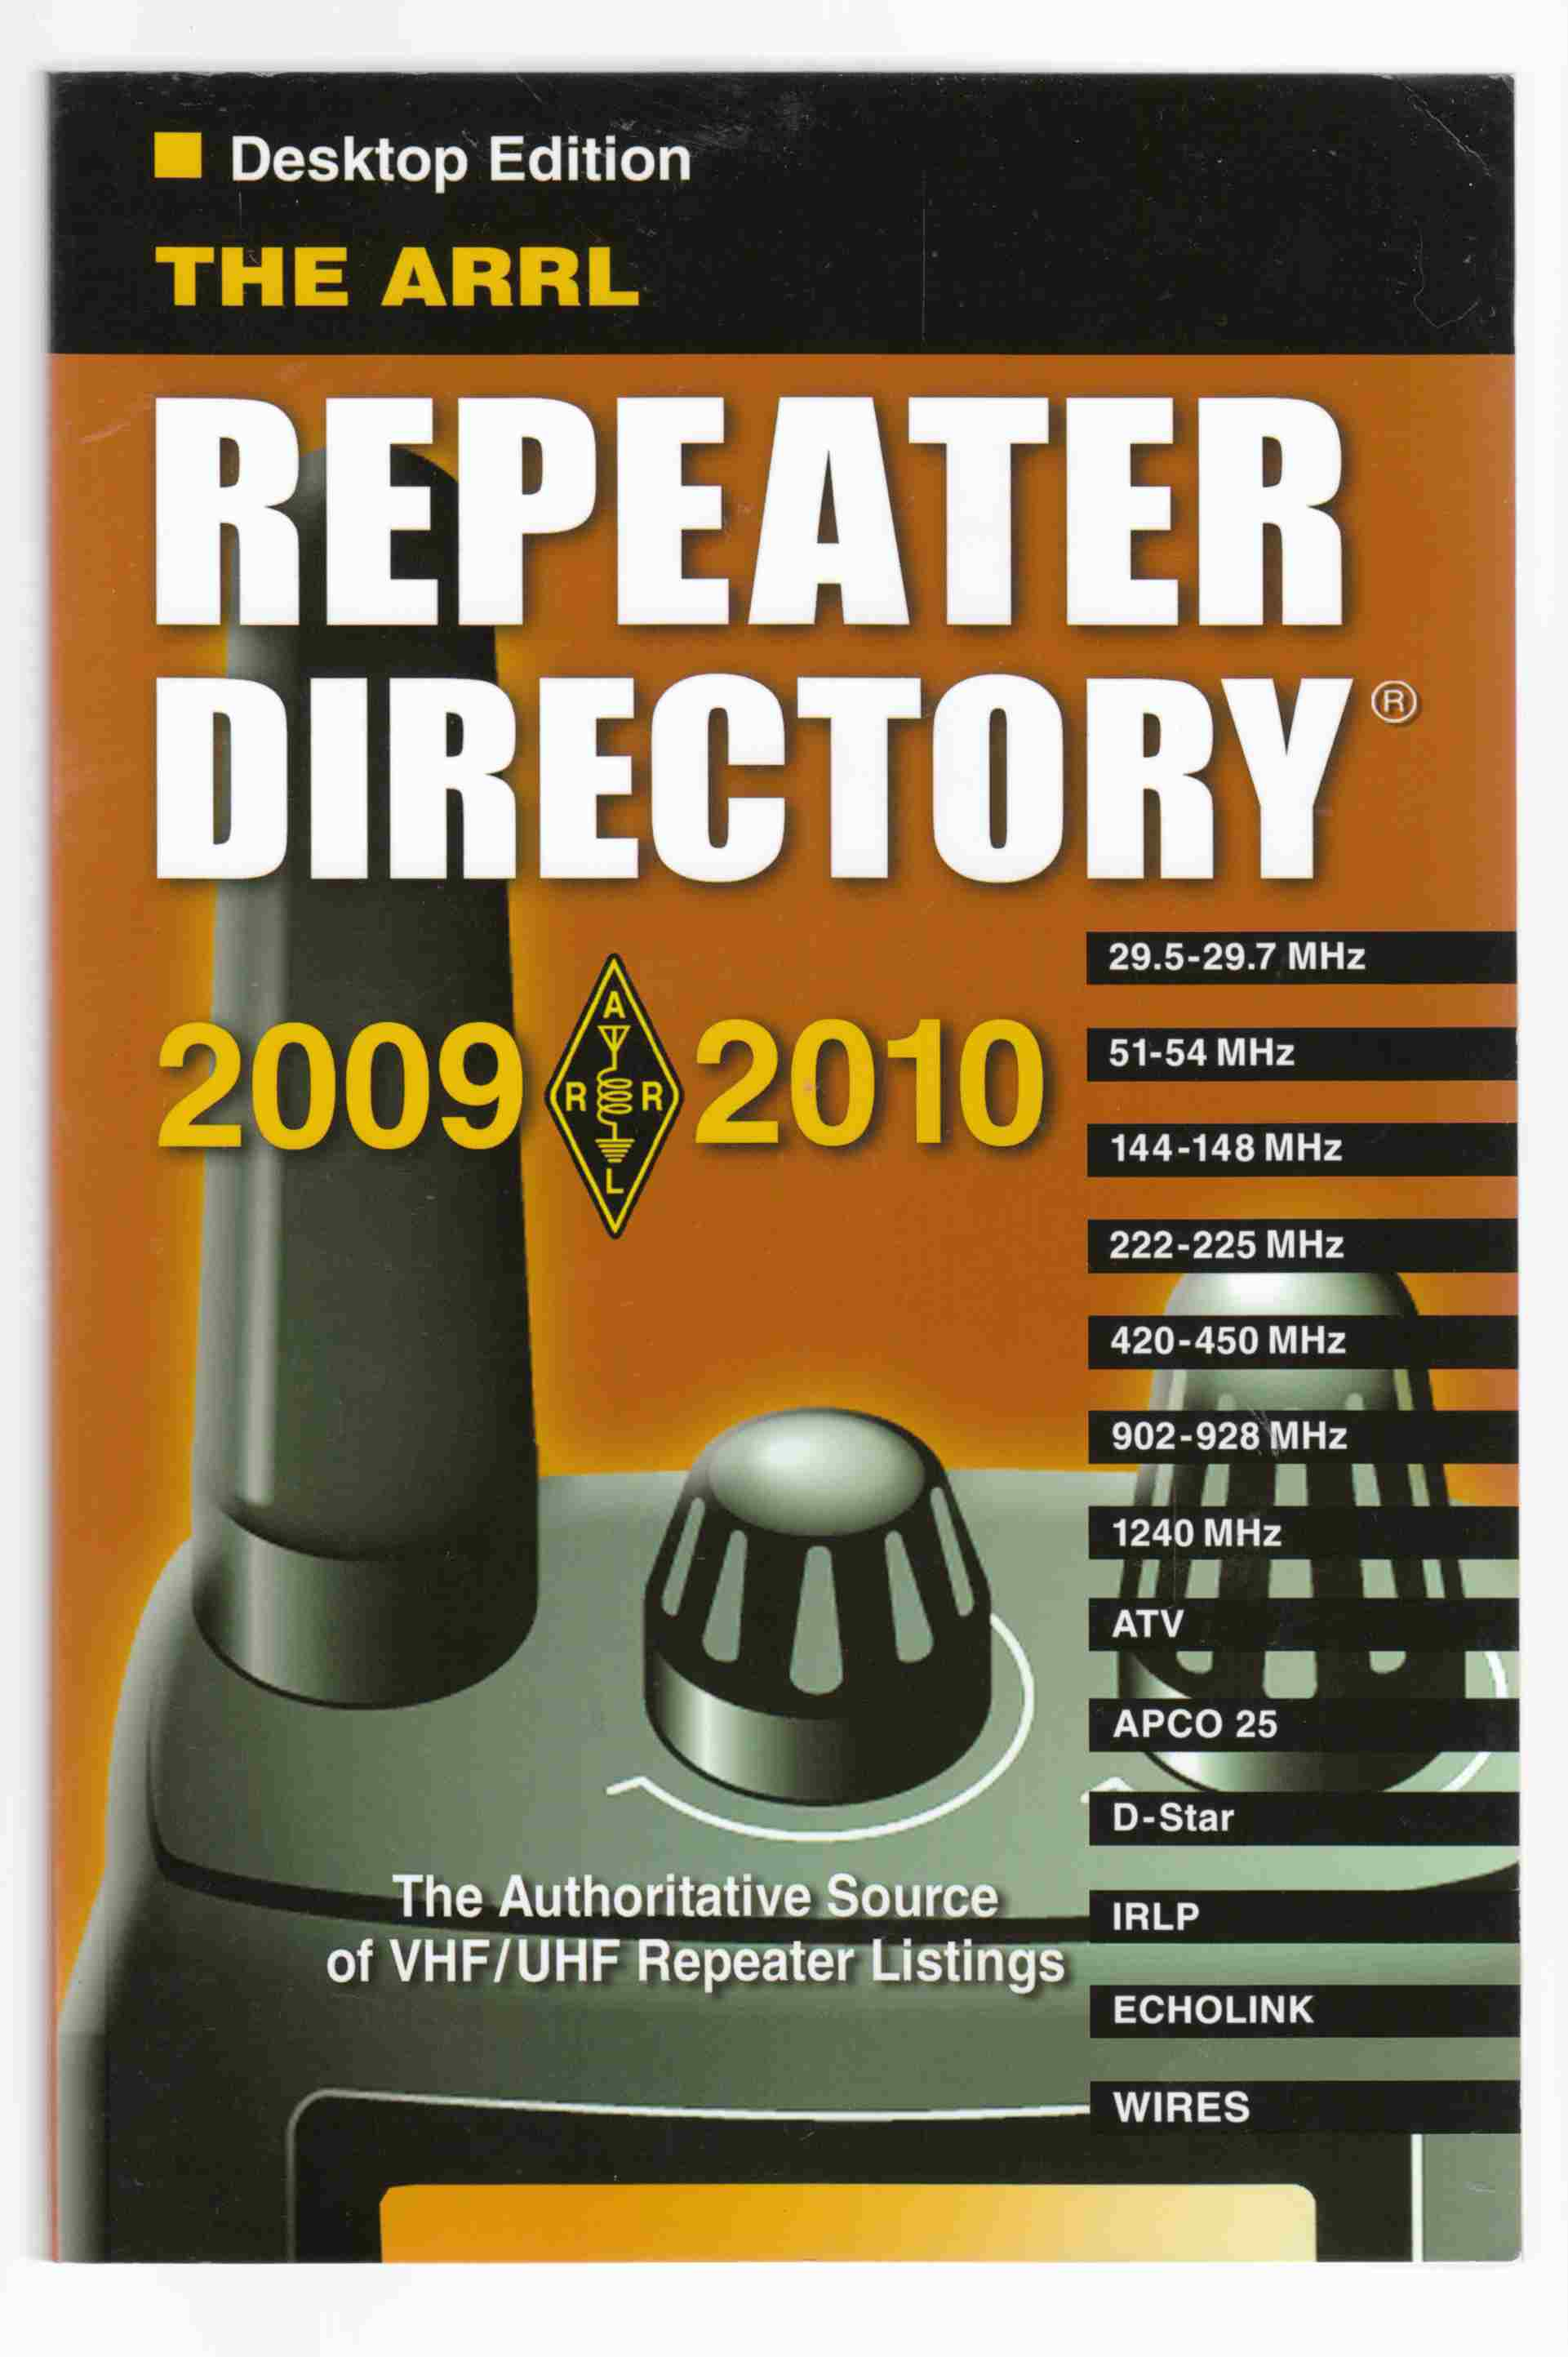 Image for The ARRL Repeater Directory 2009-2010 Desktop Edition